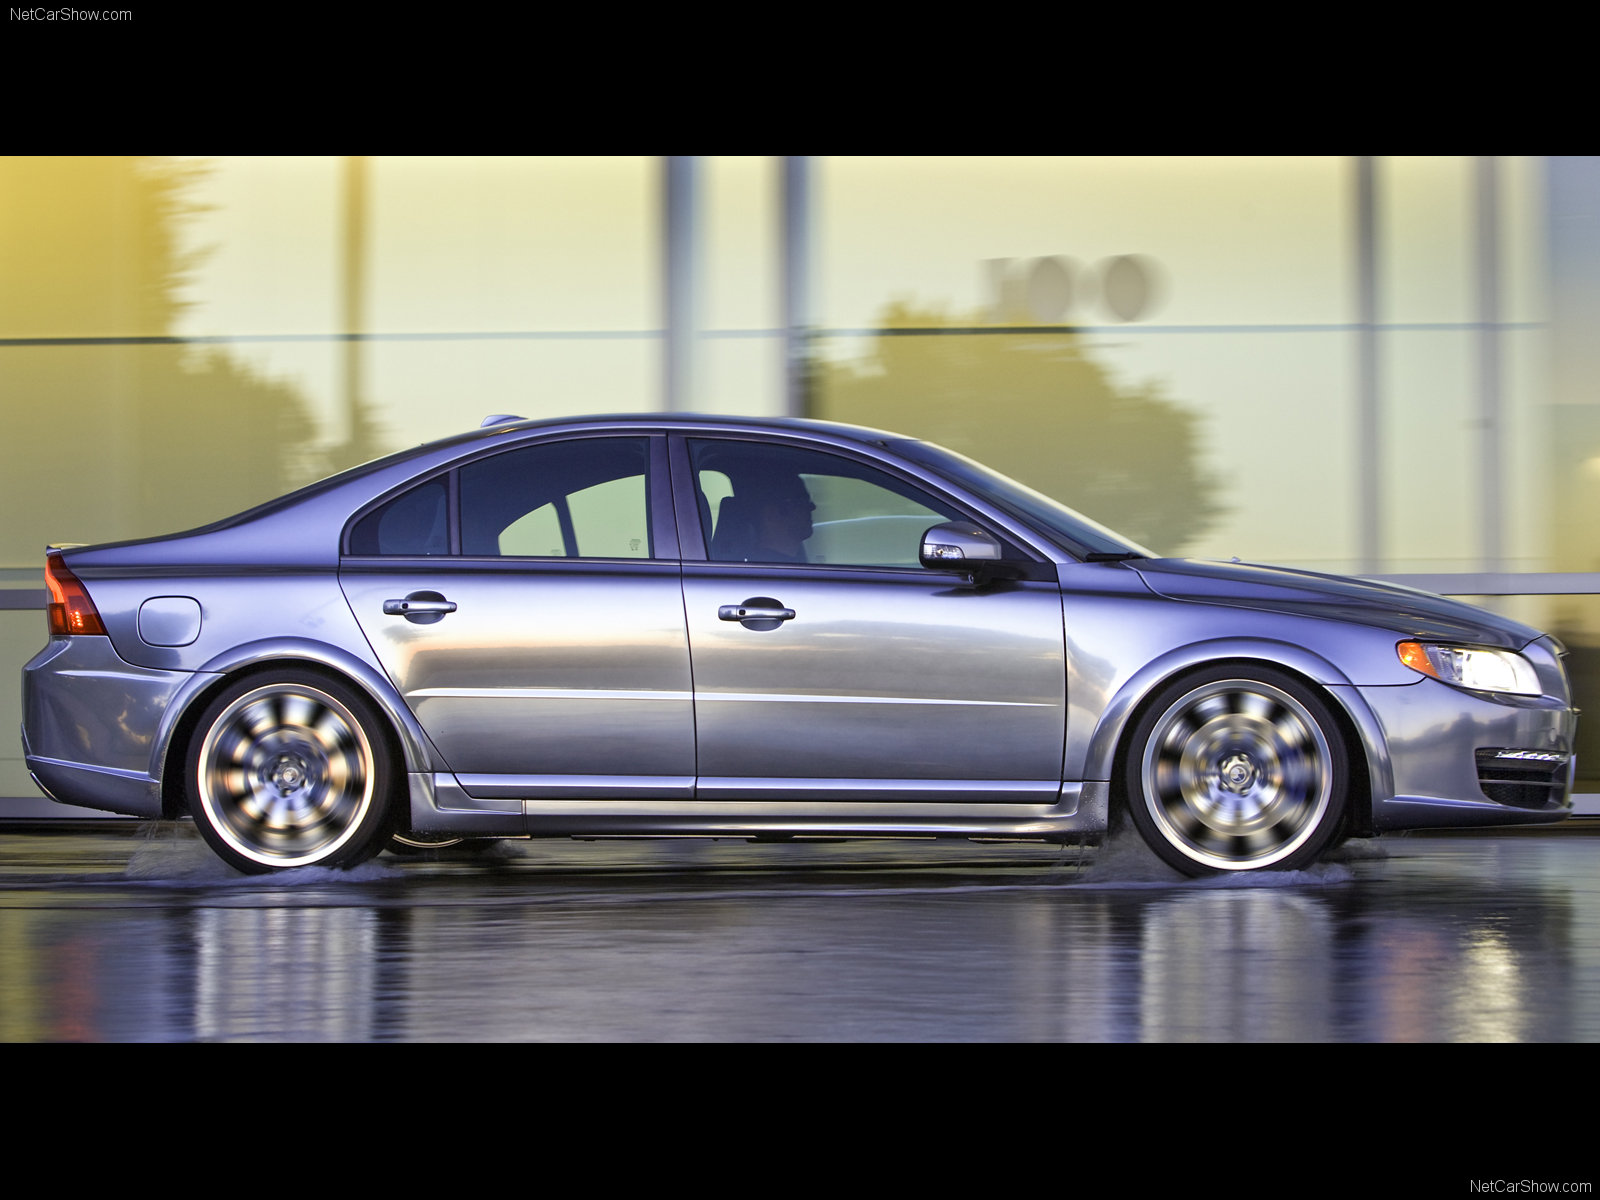 Heico Sportiv Volvo S80 photo 48822